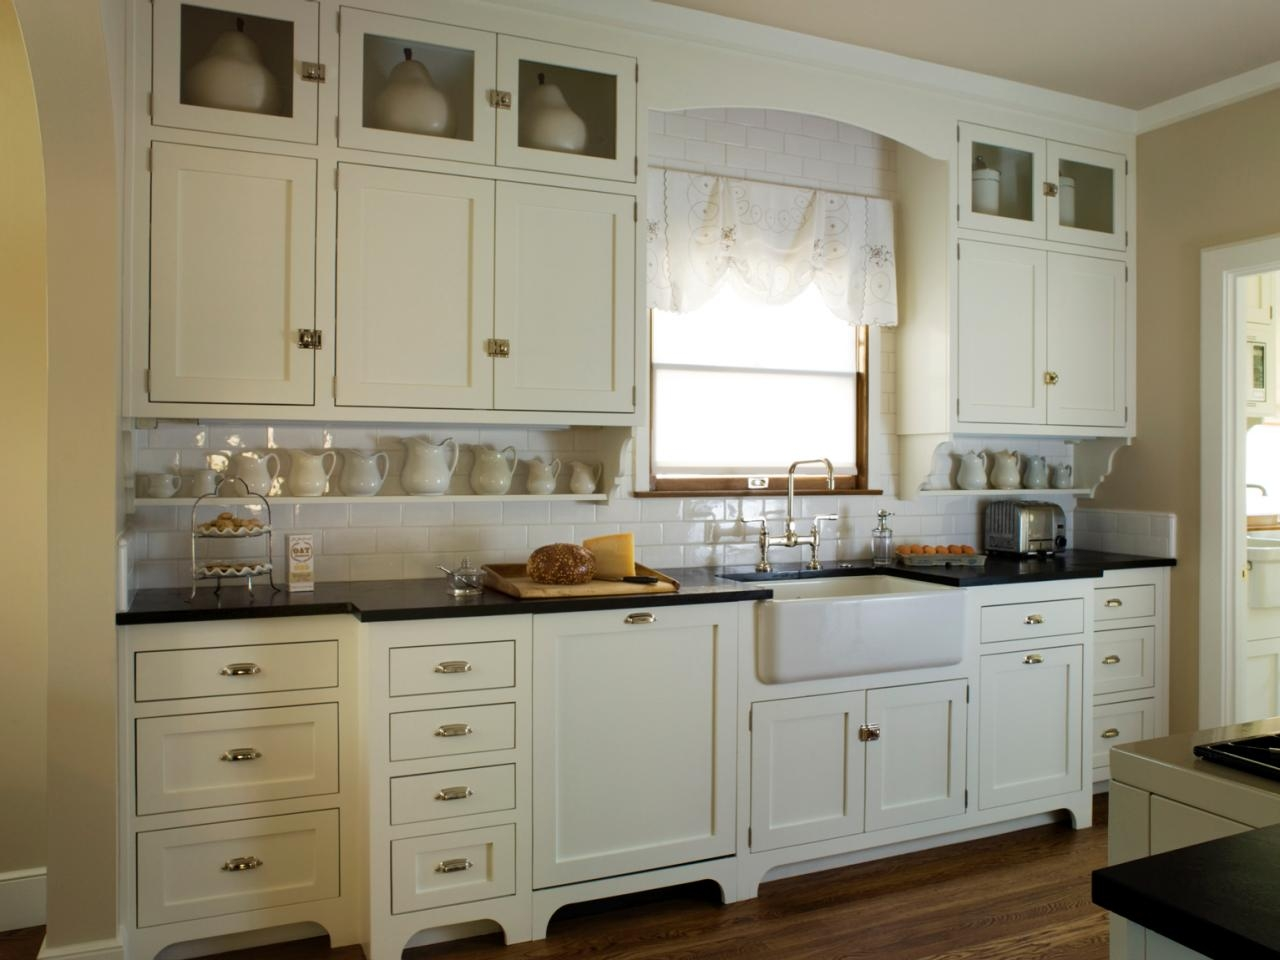 Permalink to White Kitchen Cabinets Cottage Style